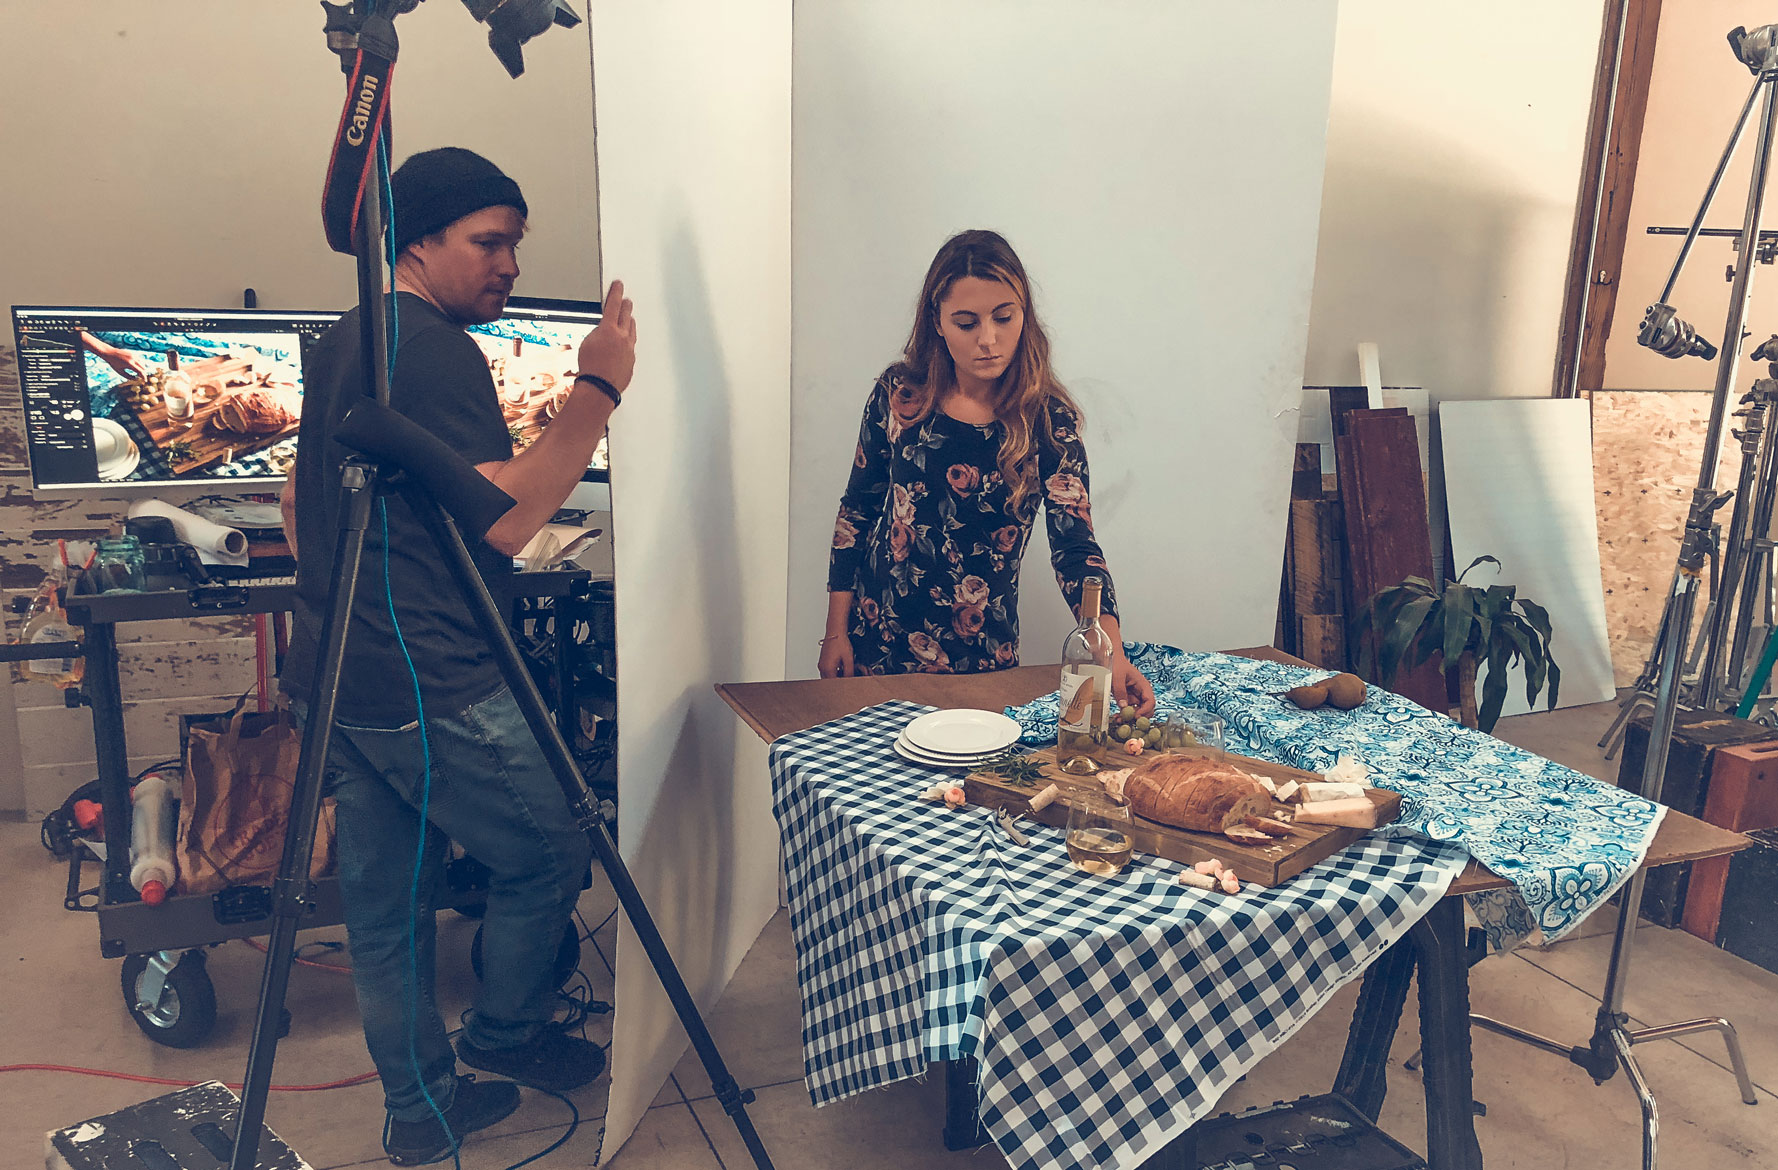 behind the scenes of food photo shoot in Grand Rapids michigan at northbound studio